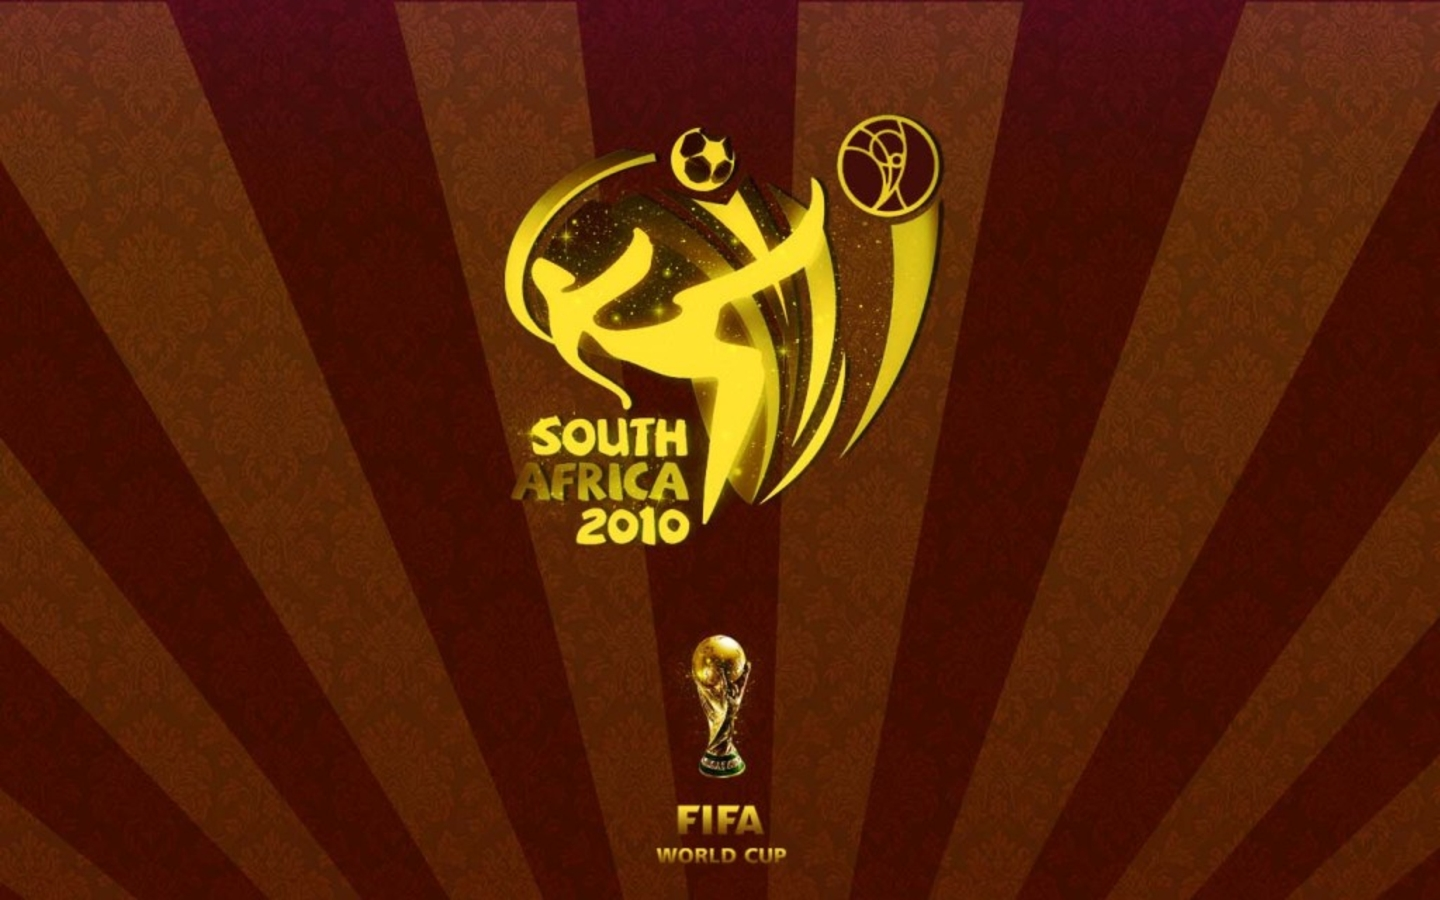 World cup 2010 wallpapers